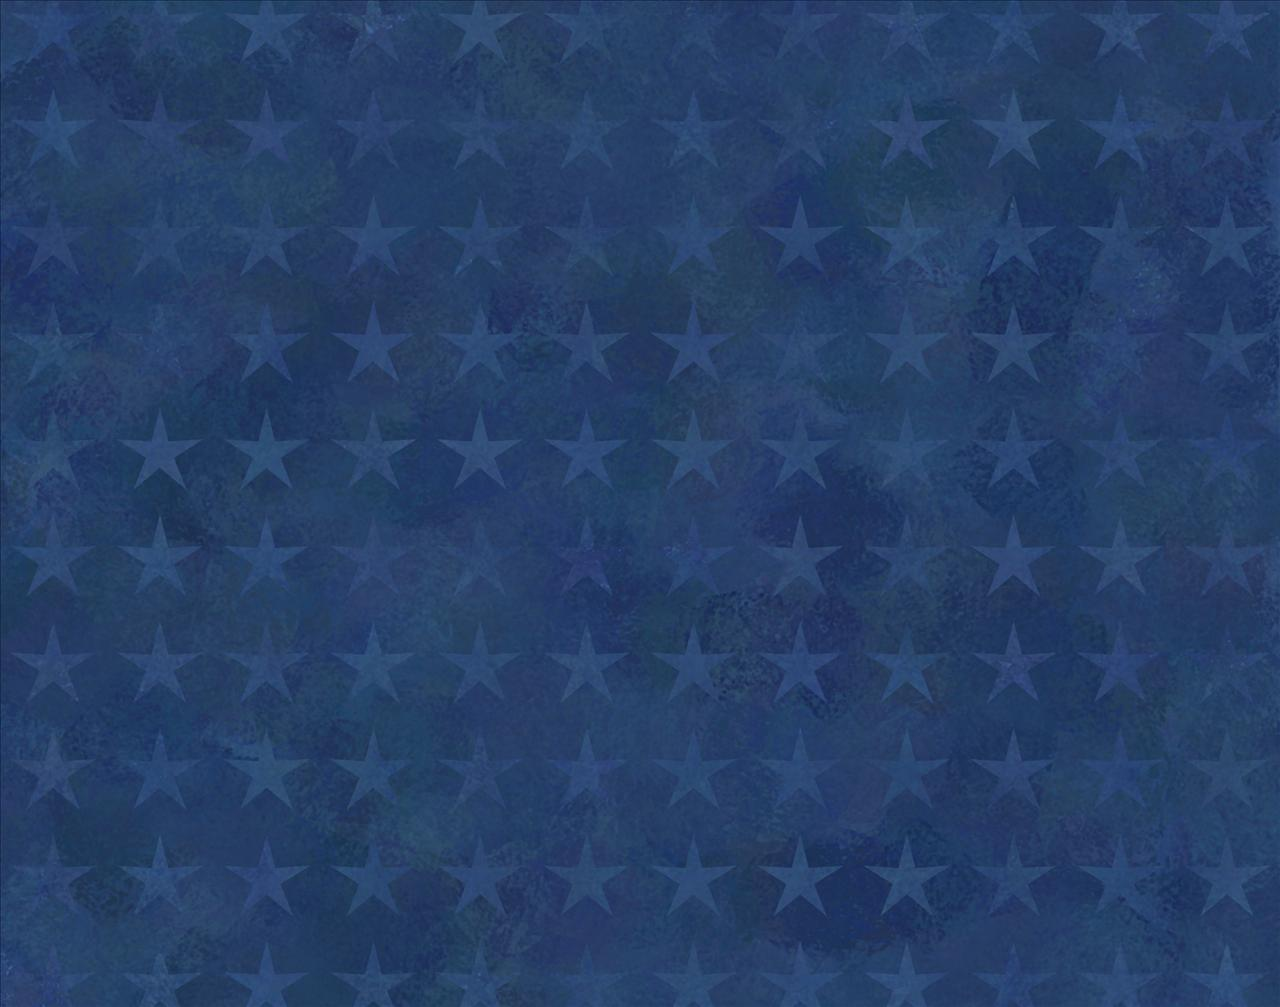 blue star background - photo #18